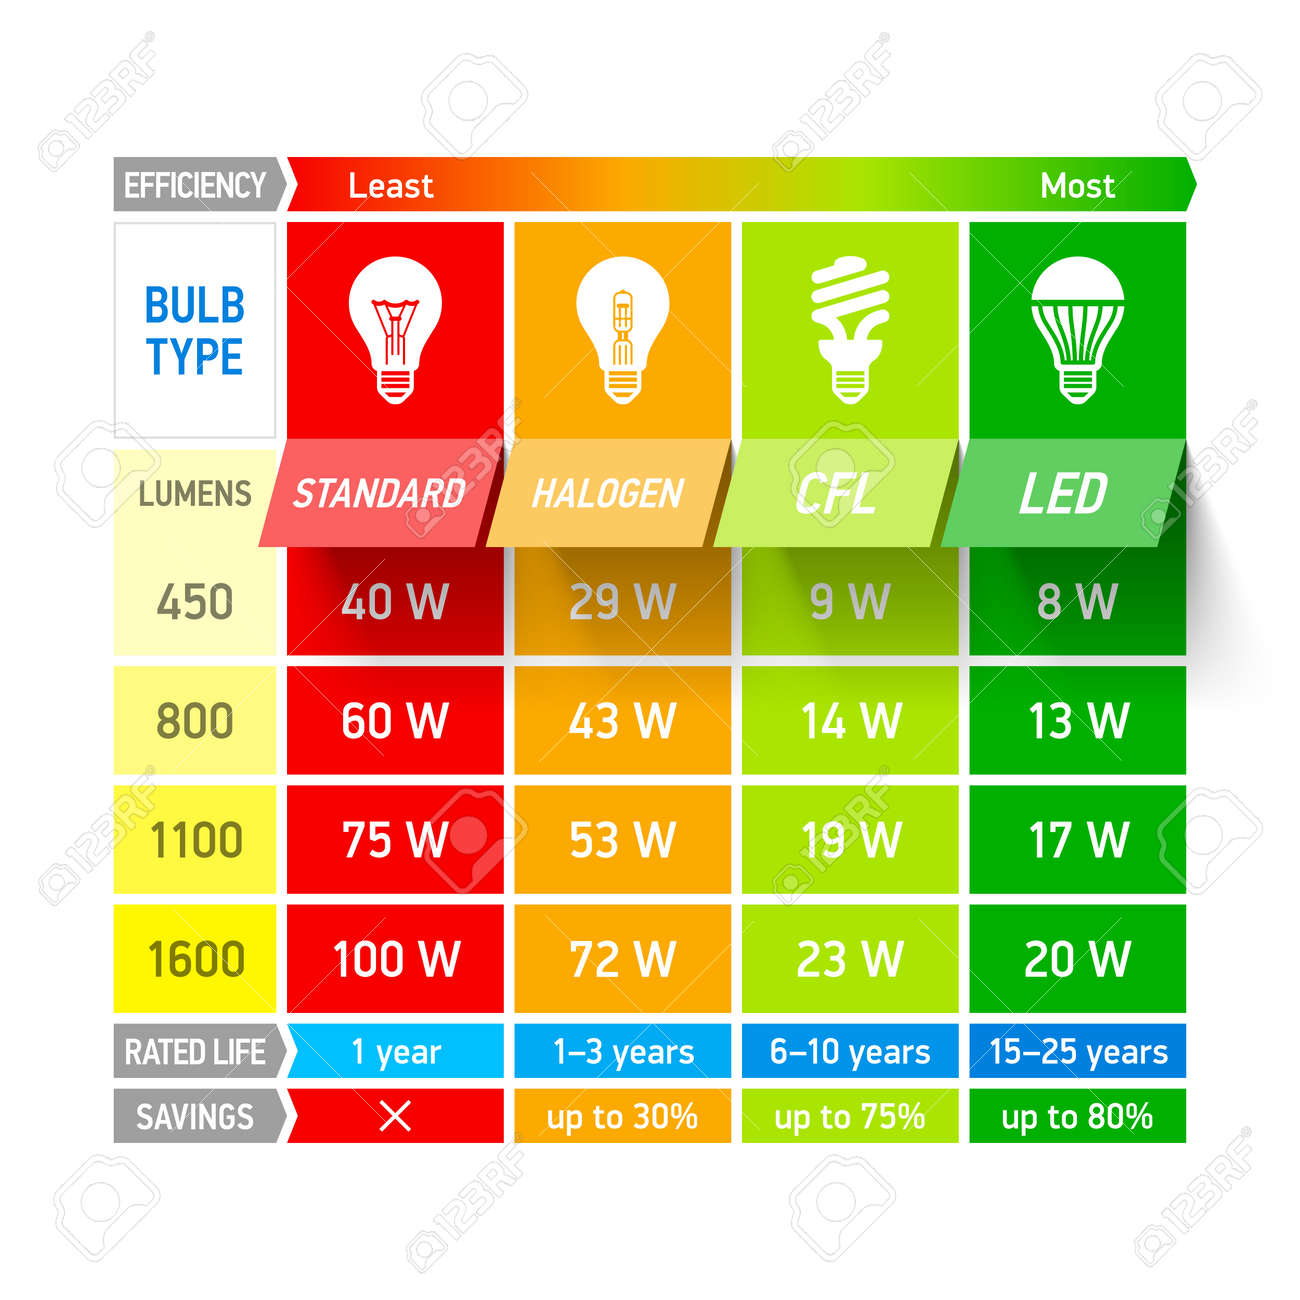 Light Bulb Comparison Chart Infographic Royalty Free Cliparts ... for Led Light Bulbs Comparison  146hul